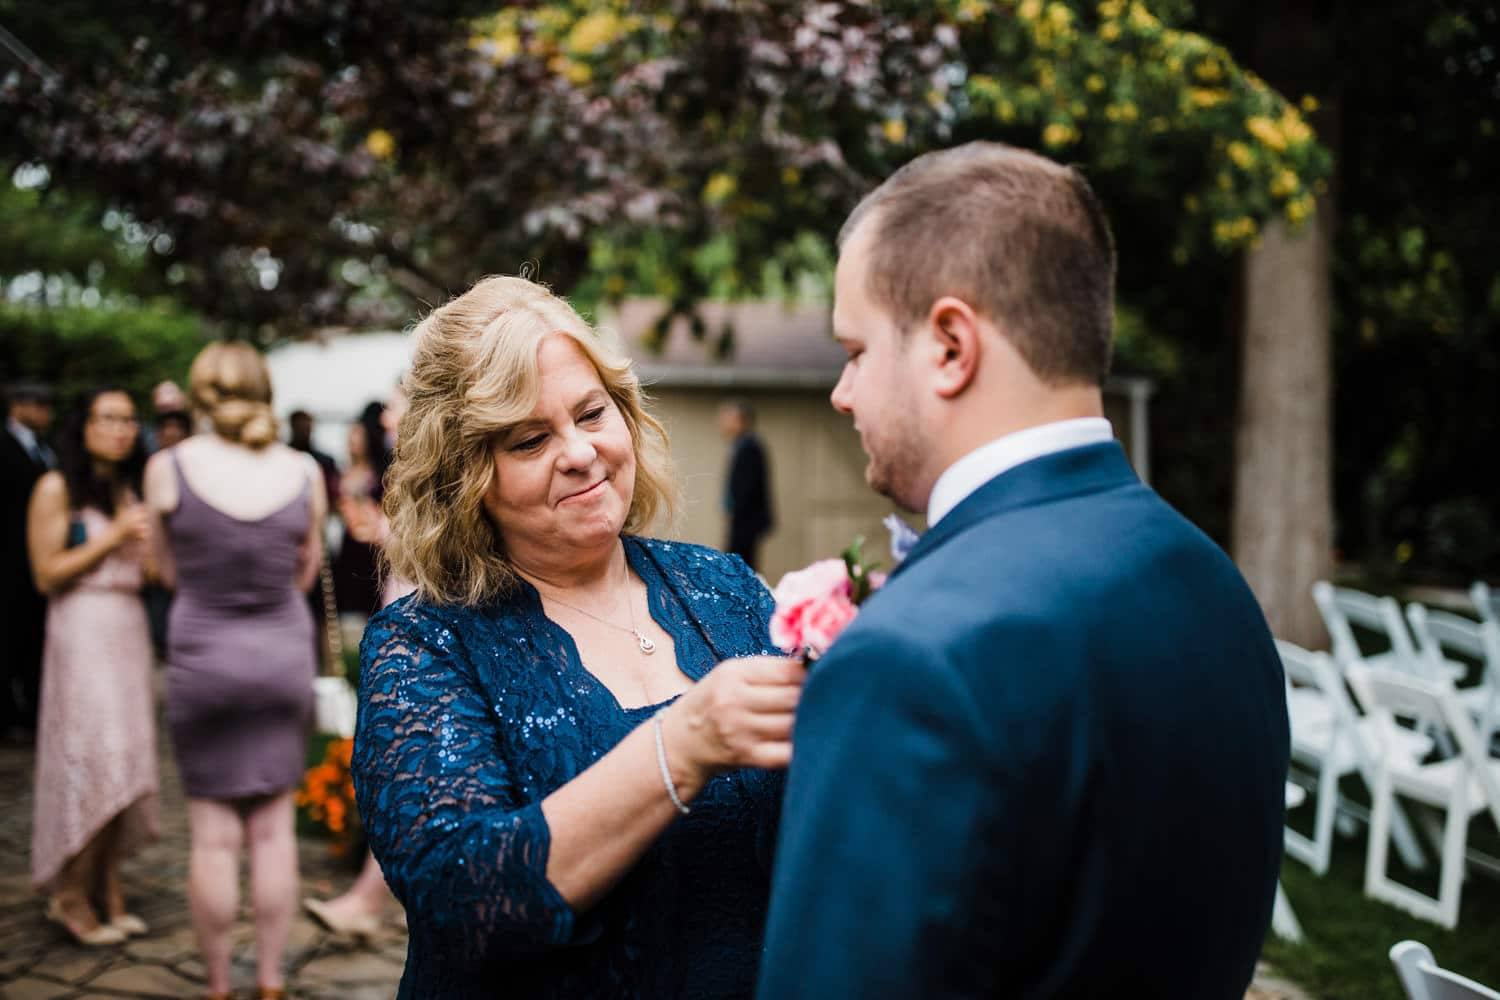 groom's mother adjusts boutonniere